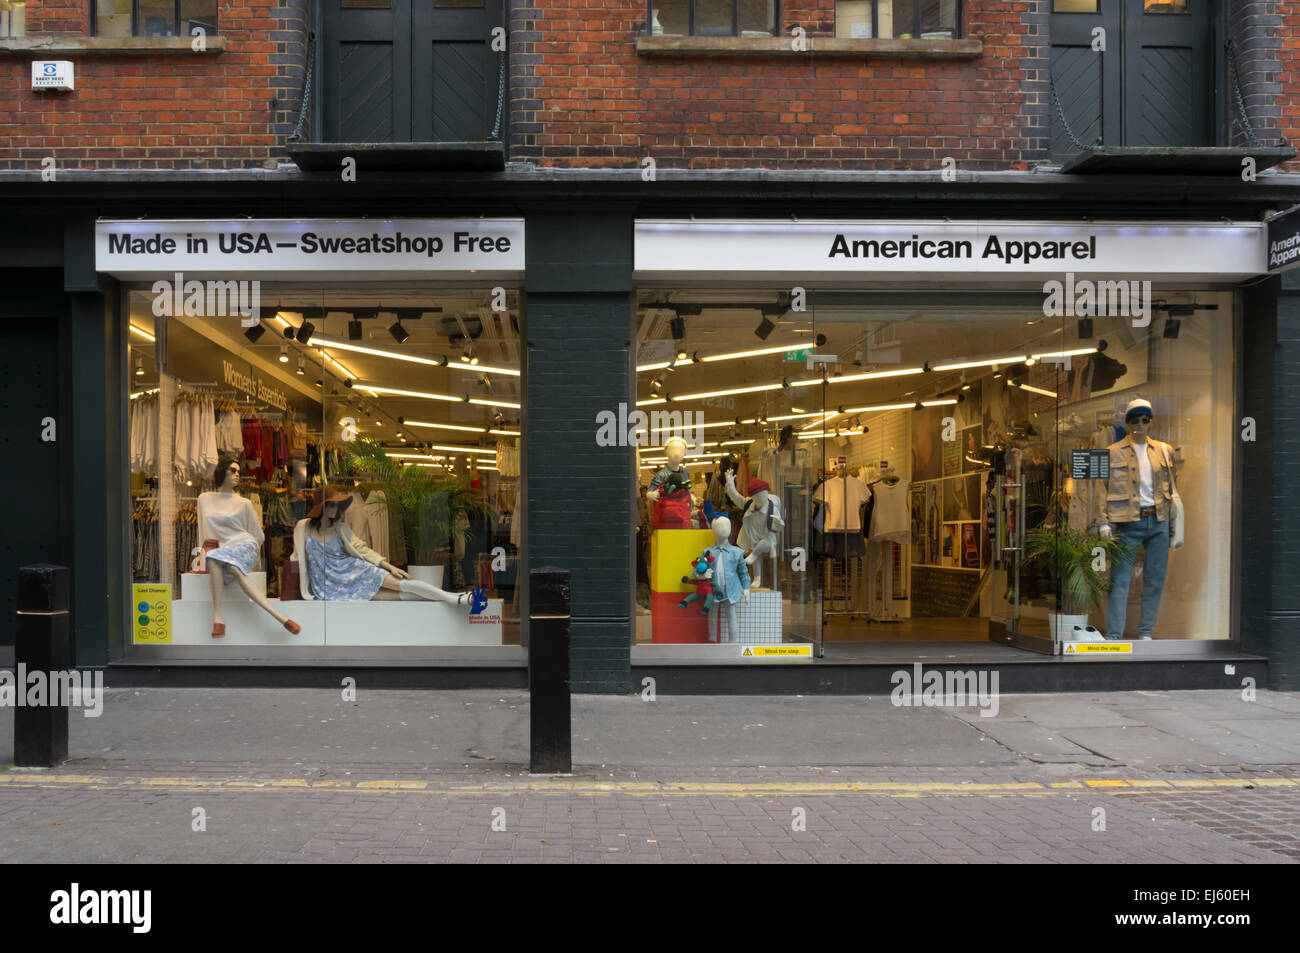 American Apparel shop in Covent Garden, Central London. - Stock Image